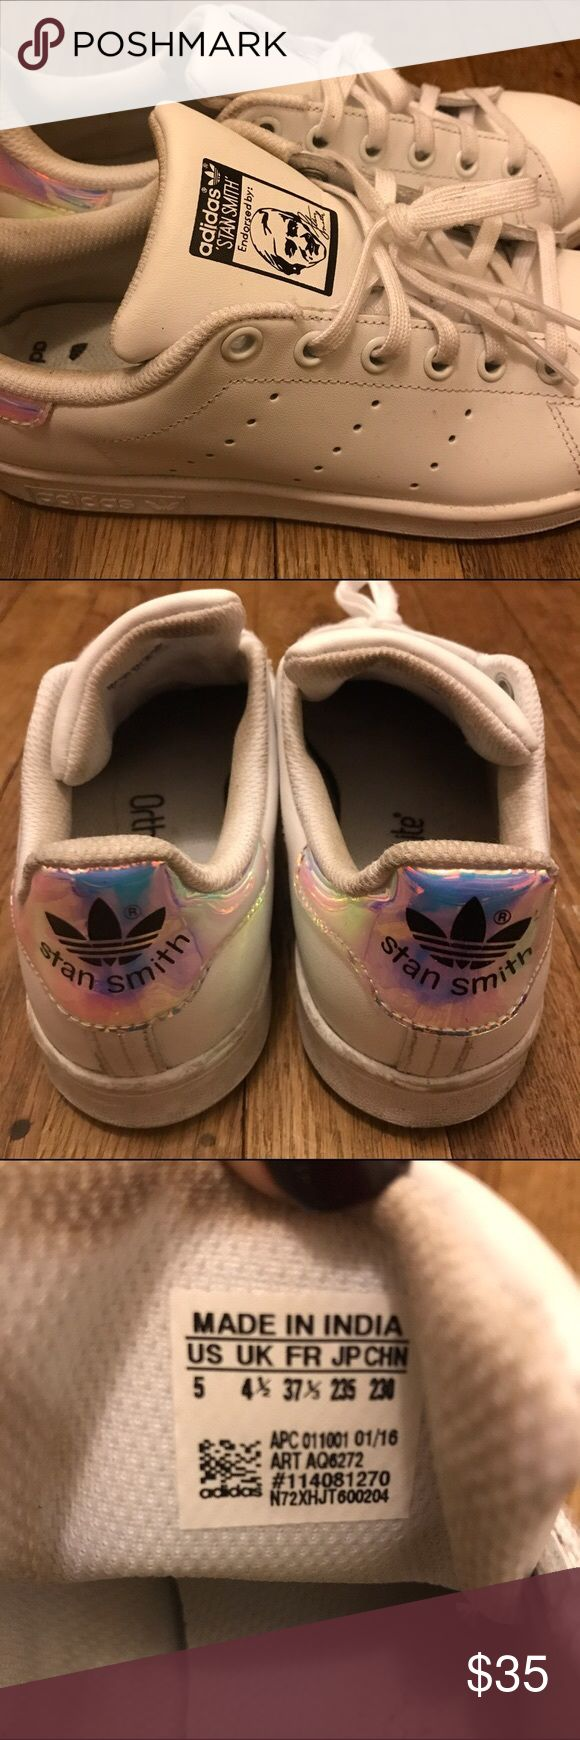 iridescent girls womens size 7 stan smith classic white with iridescent pink